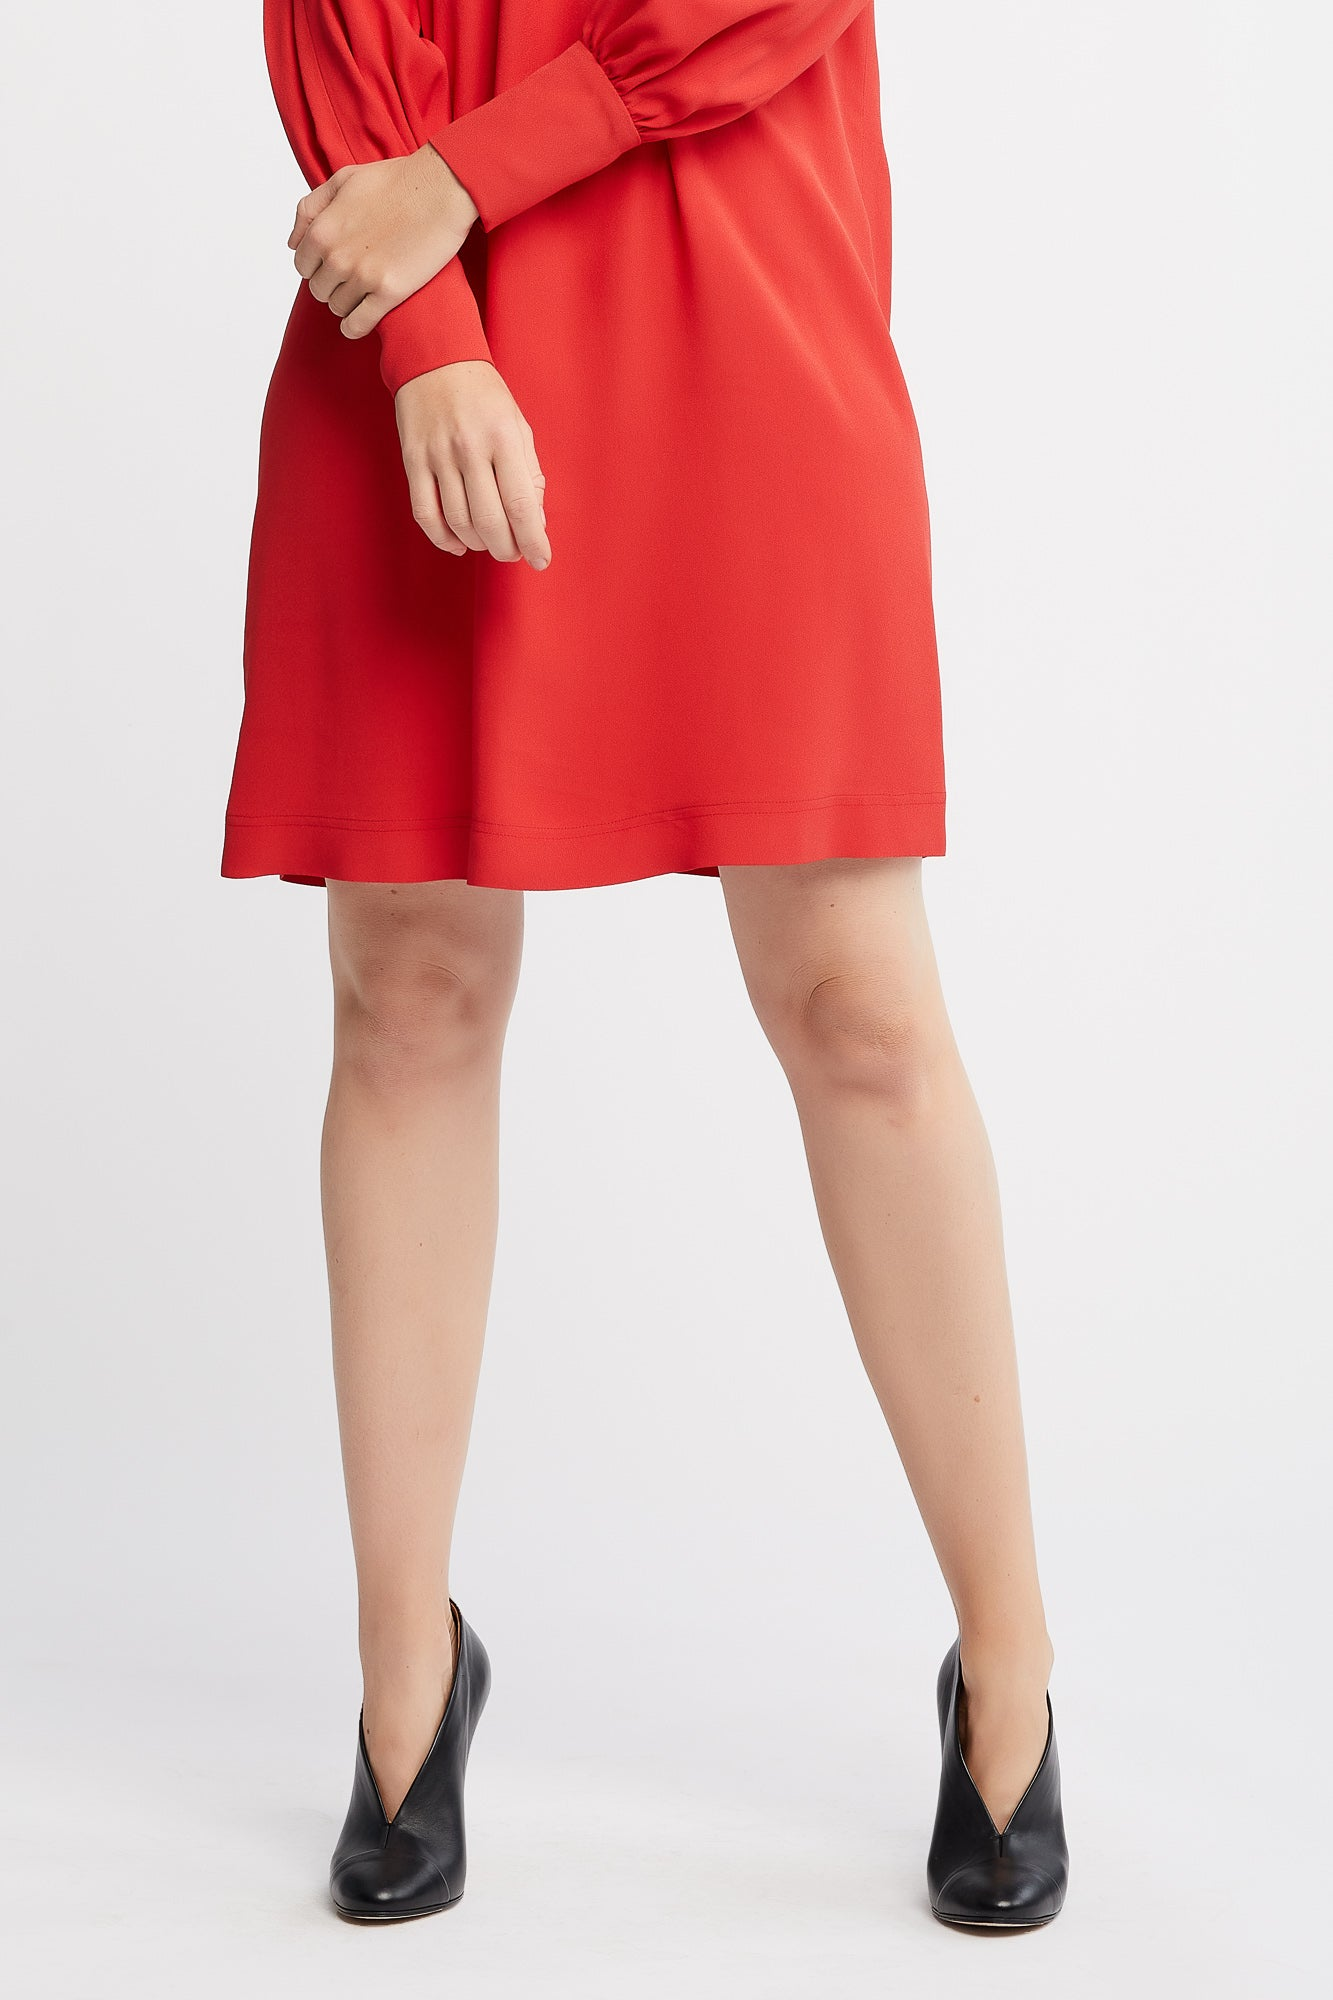 Kiki Long Sleeve Short Day dress, Work dress and Cocktail Dress in Orange